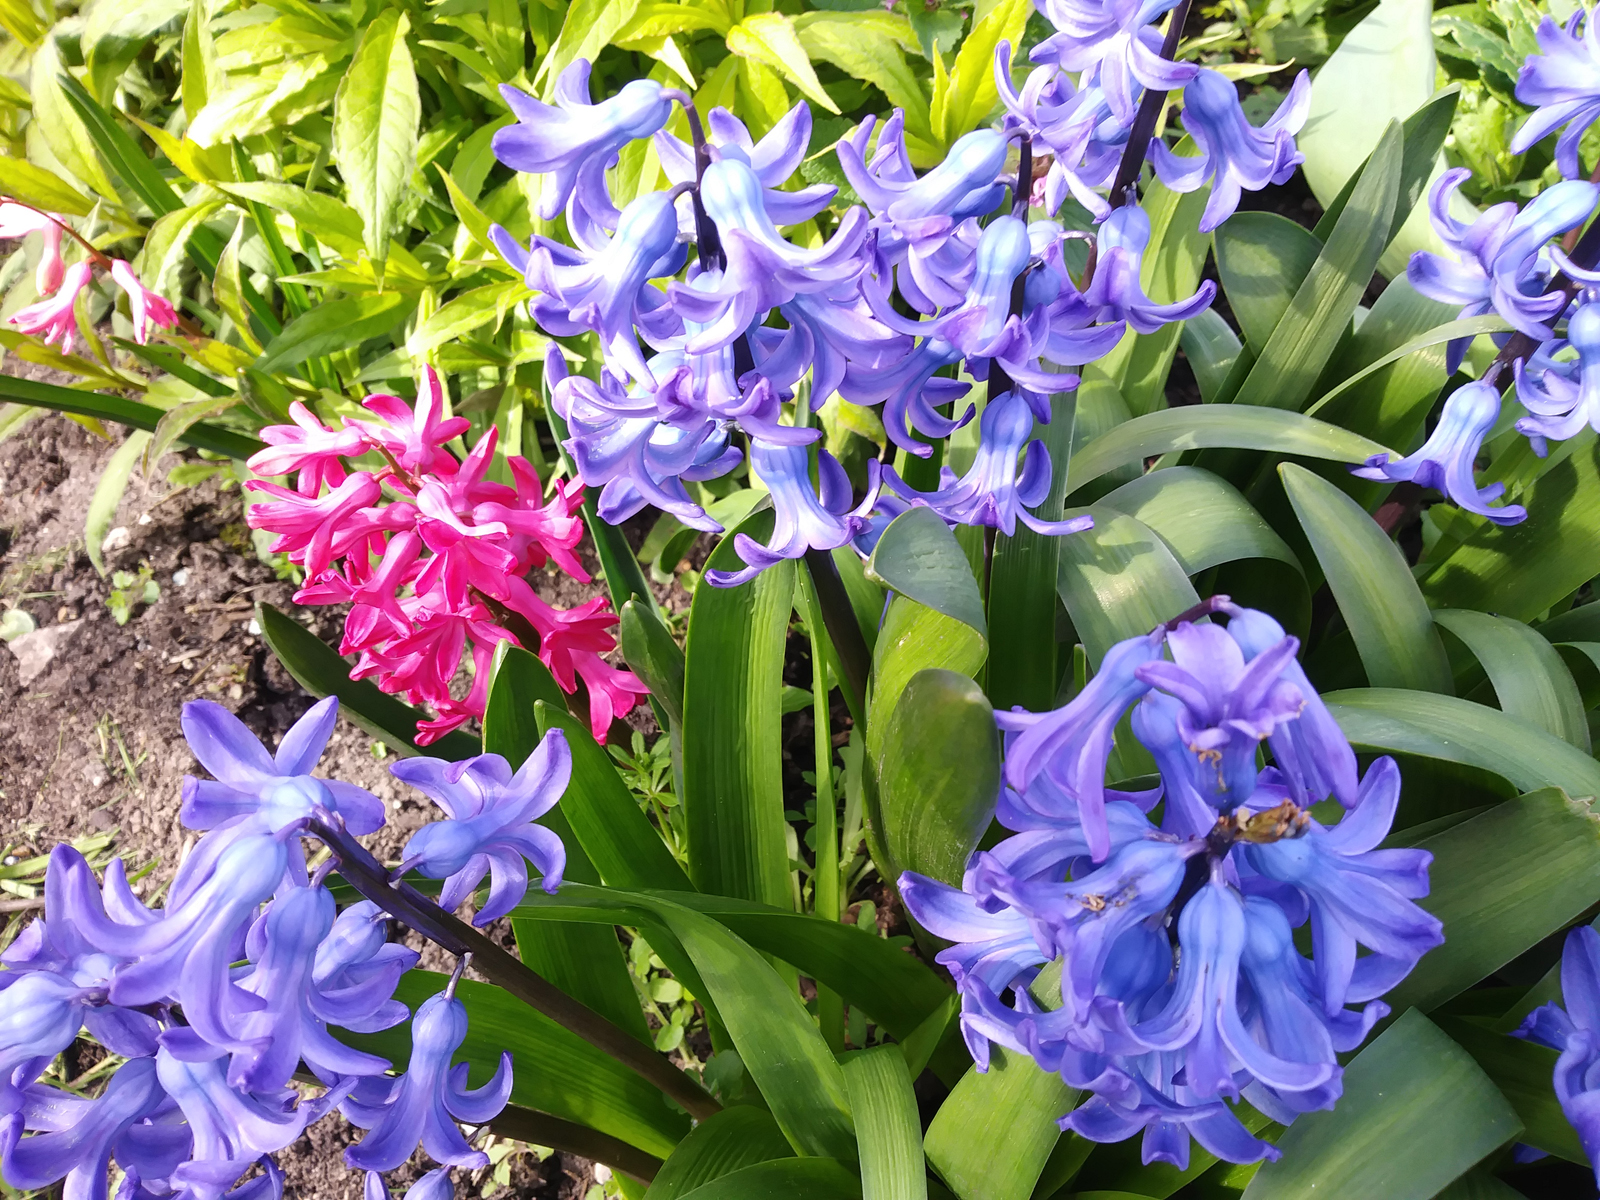 Hyacinth to brighten our spring